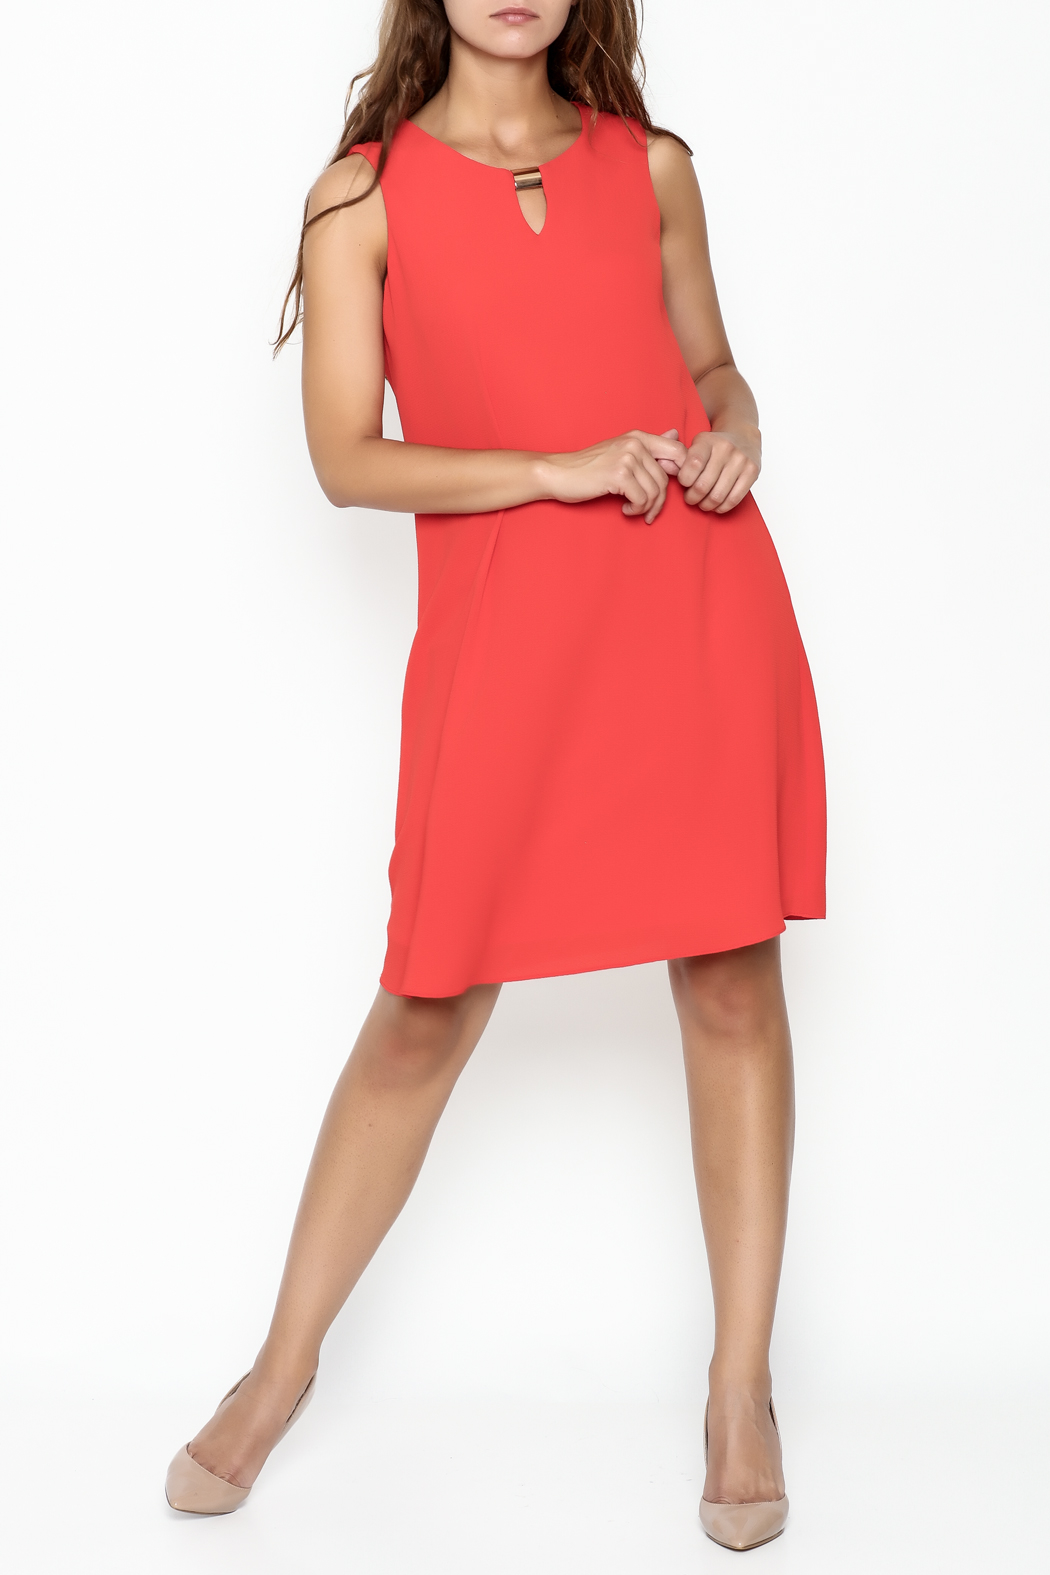 a0f503ab8f5e Frank Lyman Coral Shift Dress from Canada by Didi's Boutique ...